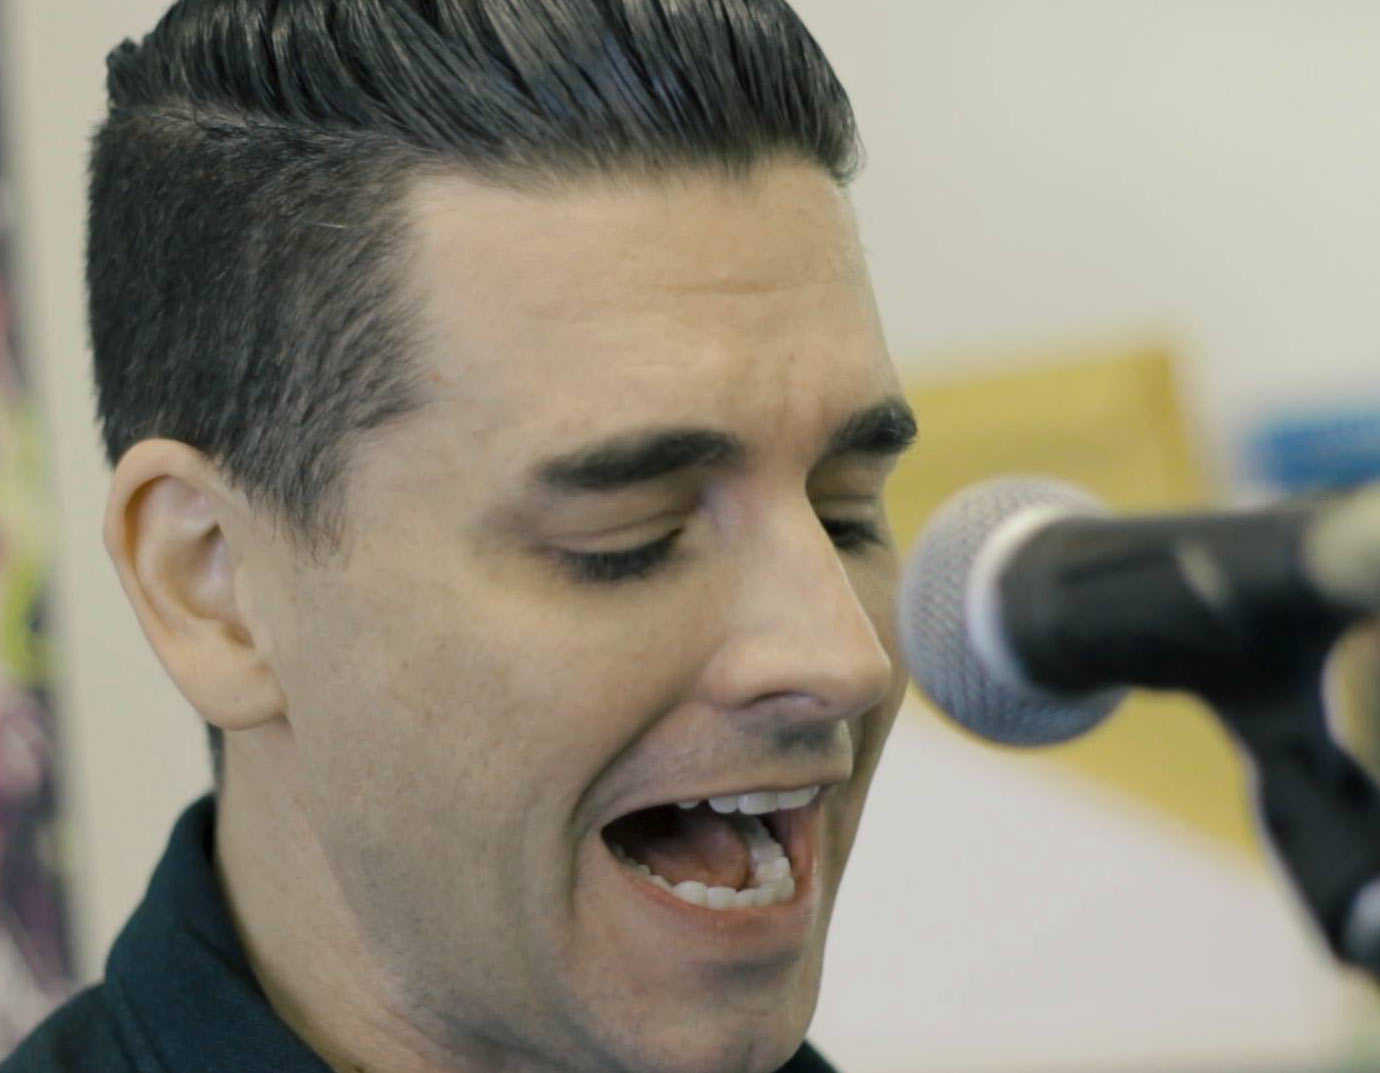 Dashboard Confessional 'We Fight' / 'Heart Beat Here' (Acoustic) on No Future